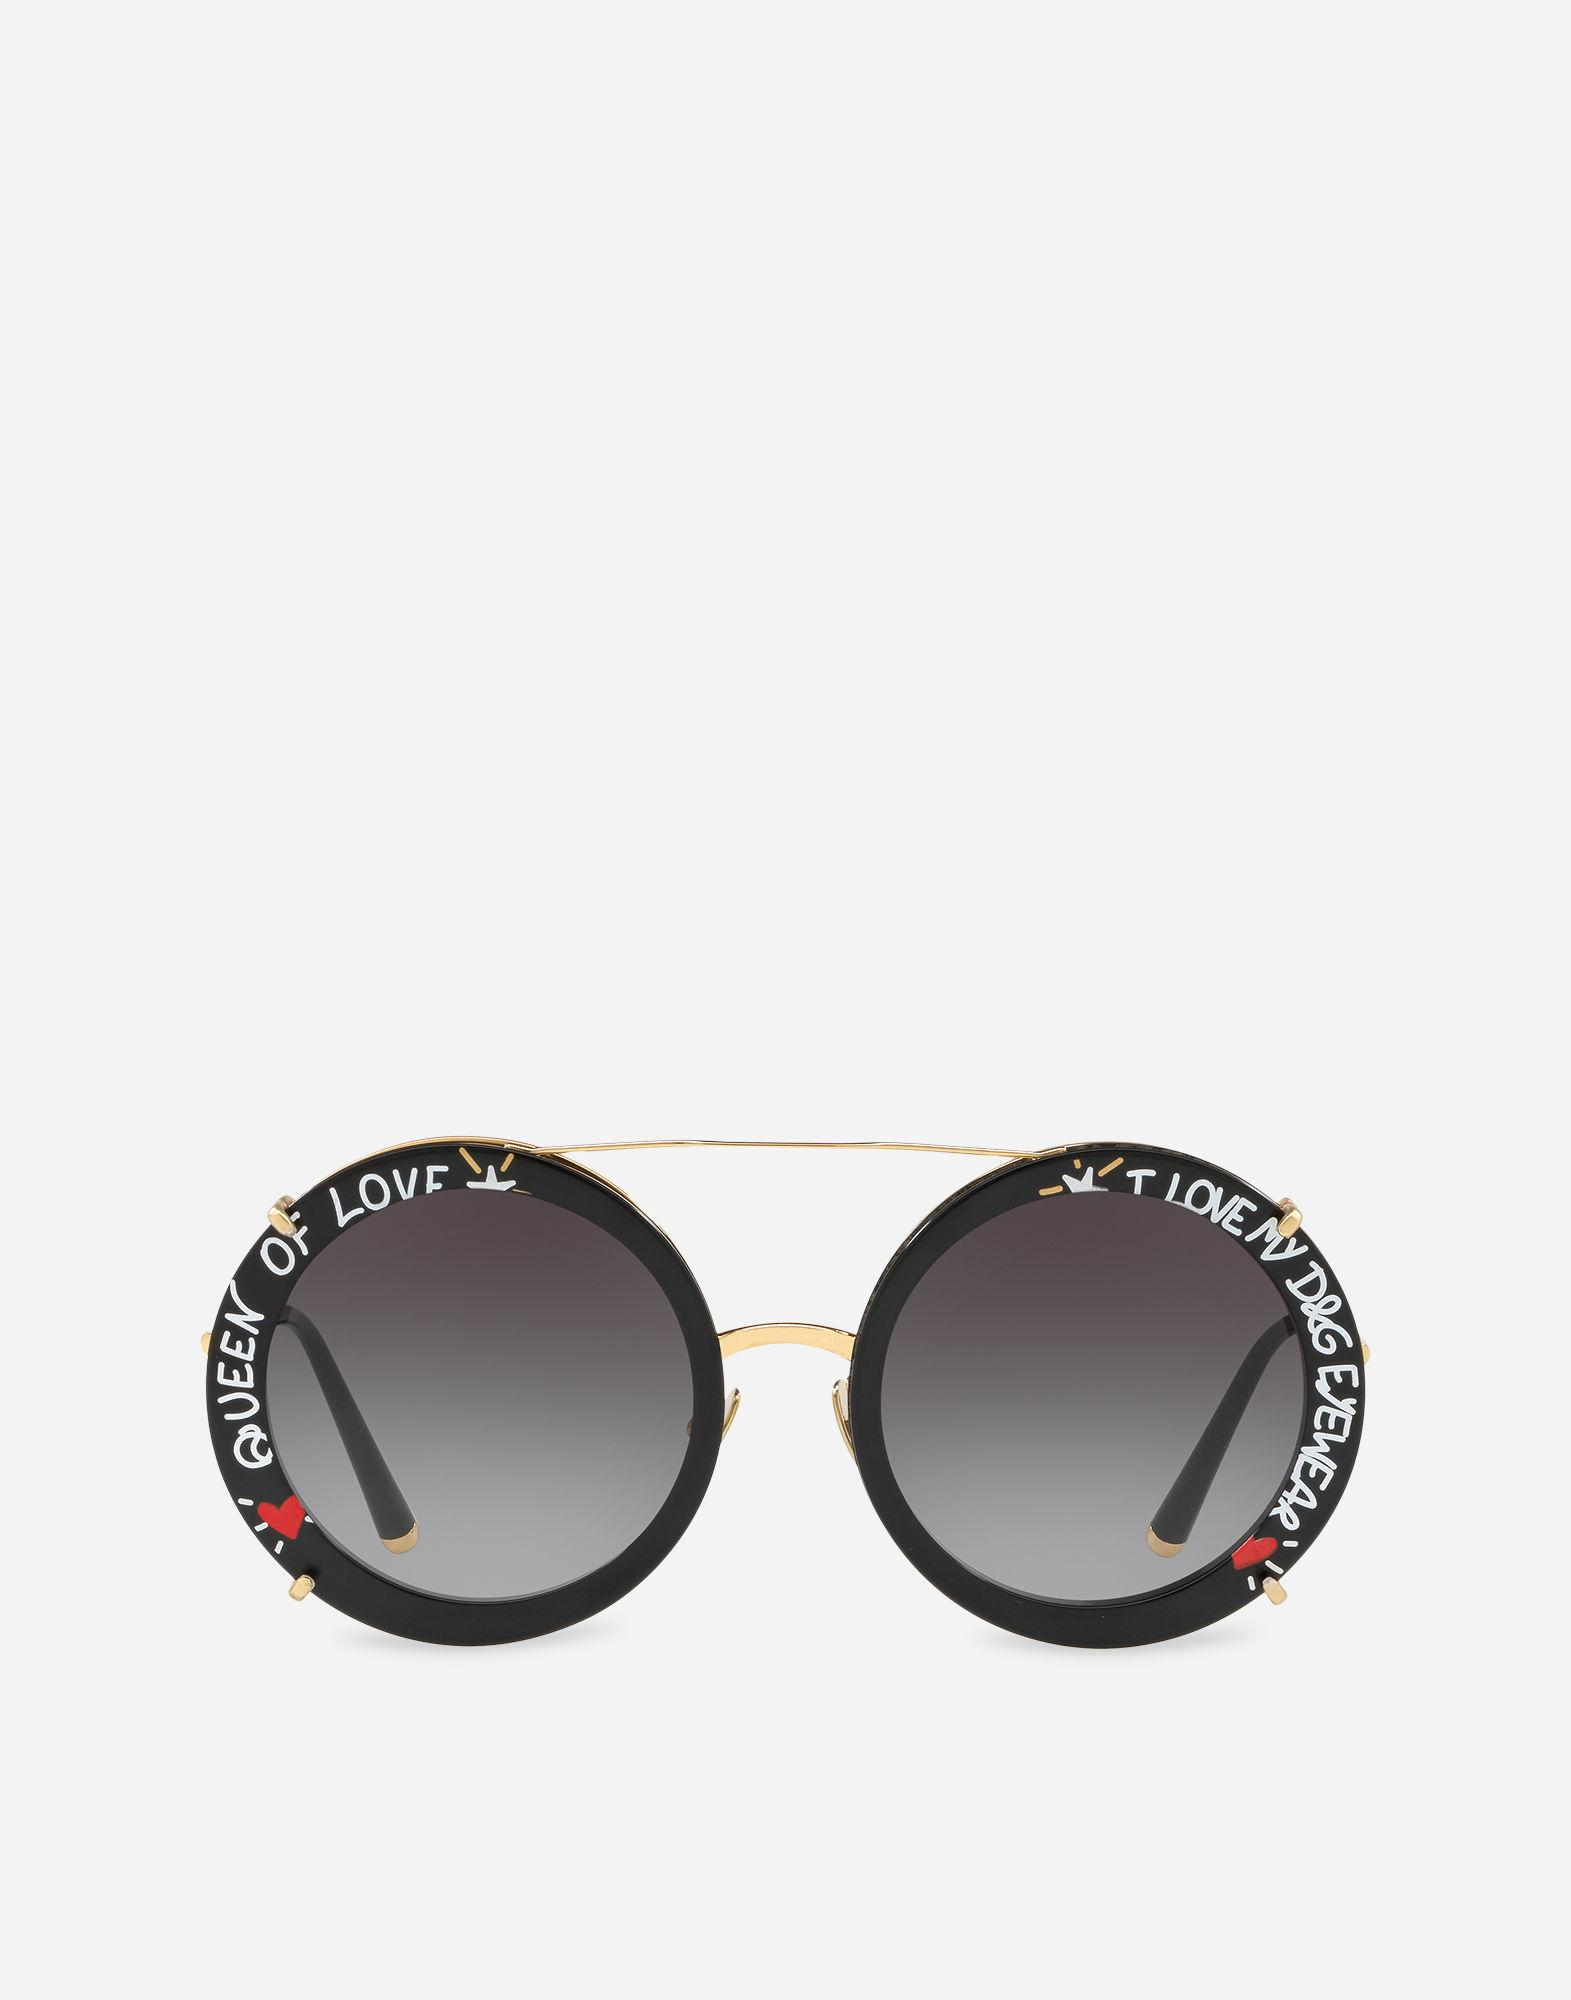 d5f2d69efe6 Dolce   Gabbana. Women s Metallic Round Clip-on Sunglasses In Gold Metal  With Graffiti Print